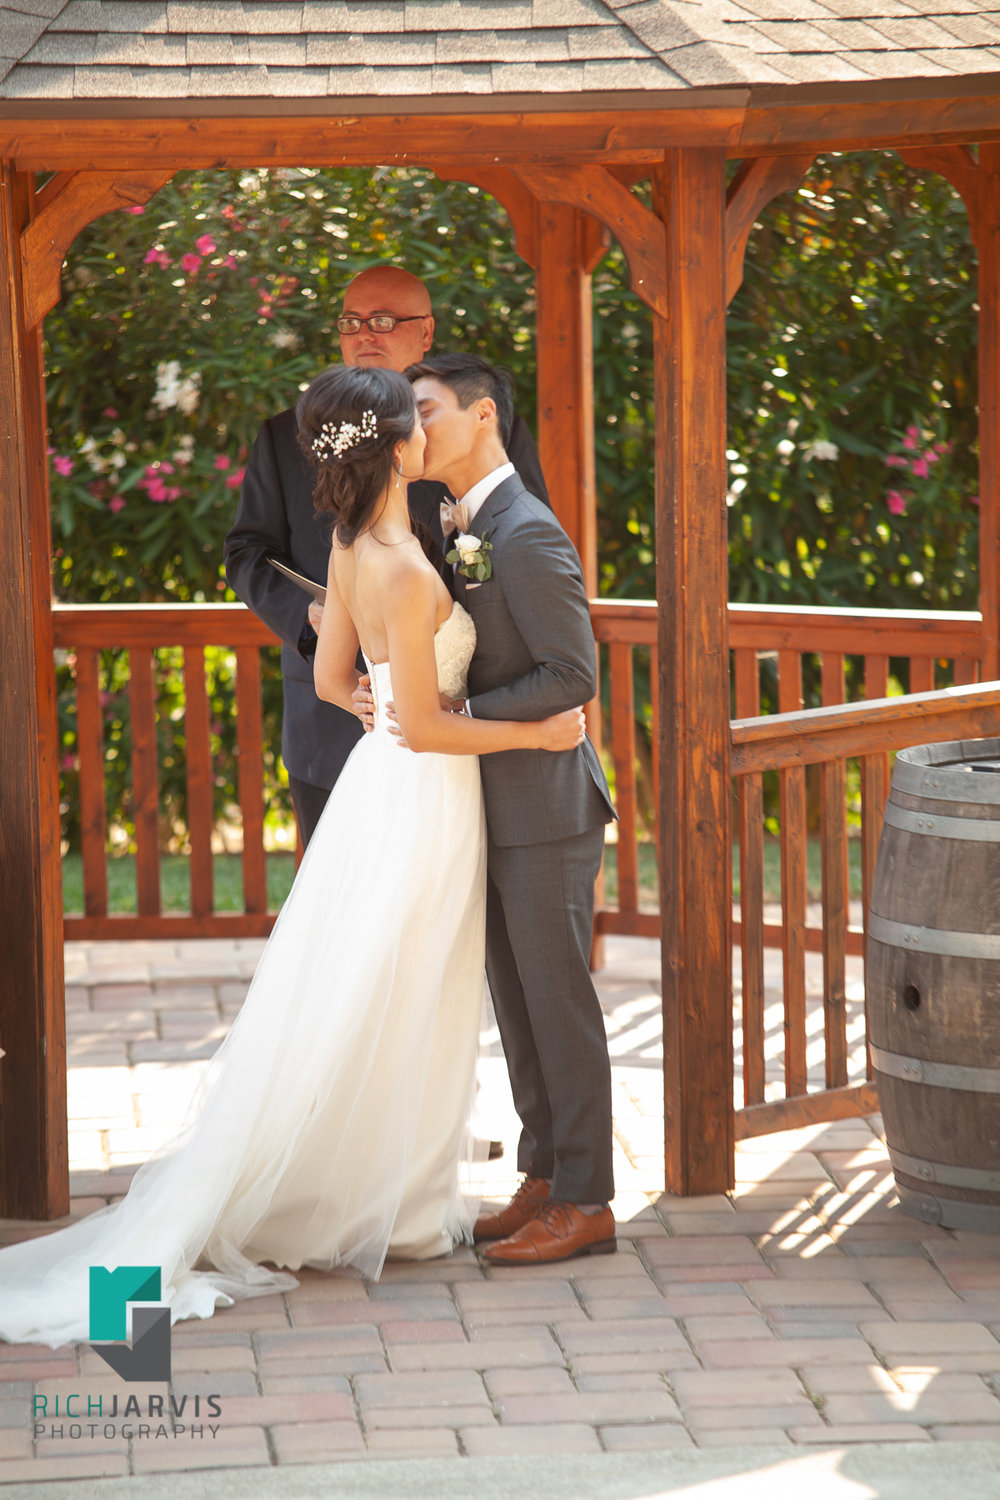 Rich Jarvis Photography Wedding19.jpg